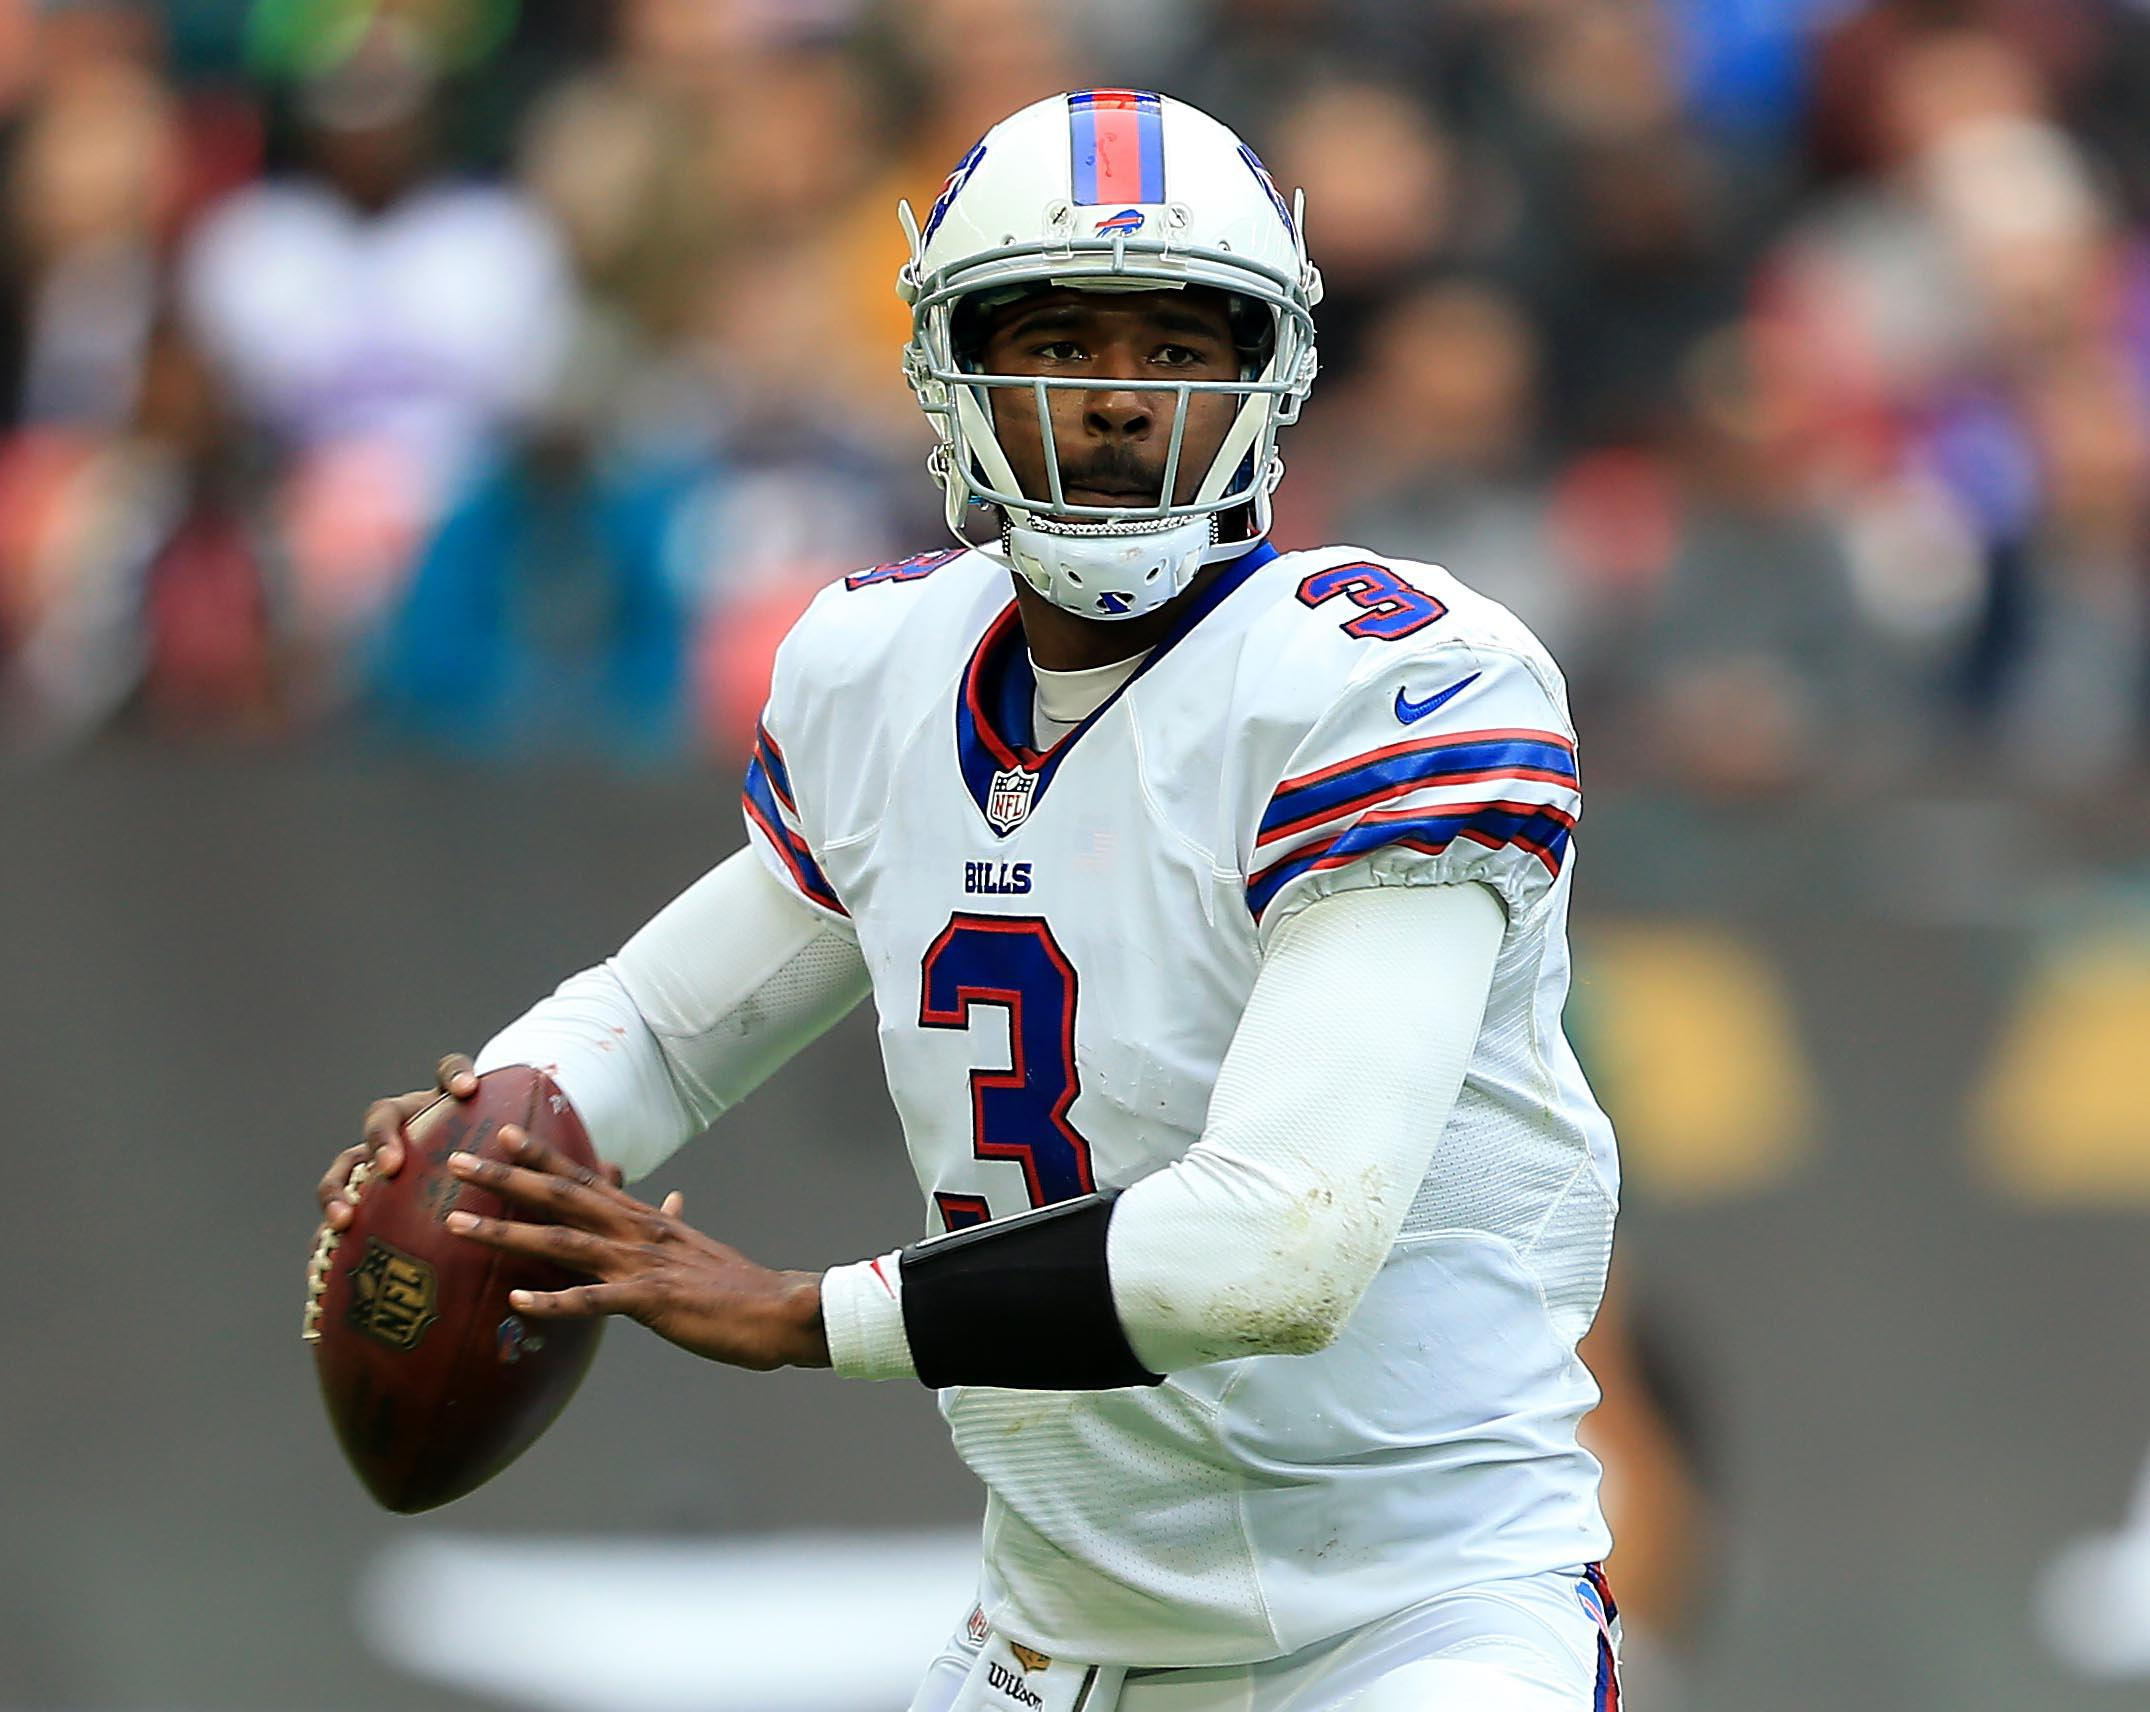 Rex Ryan said he didn't consider benching EJ Manuel during Sunday's loss to the Jaguars in London. (Getty Images)